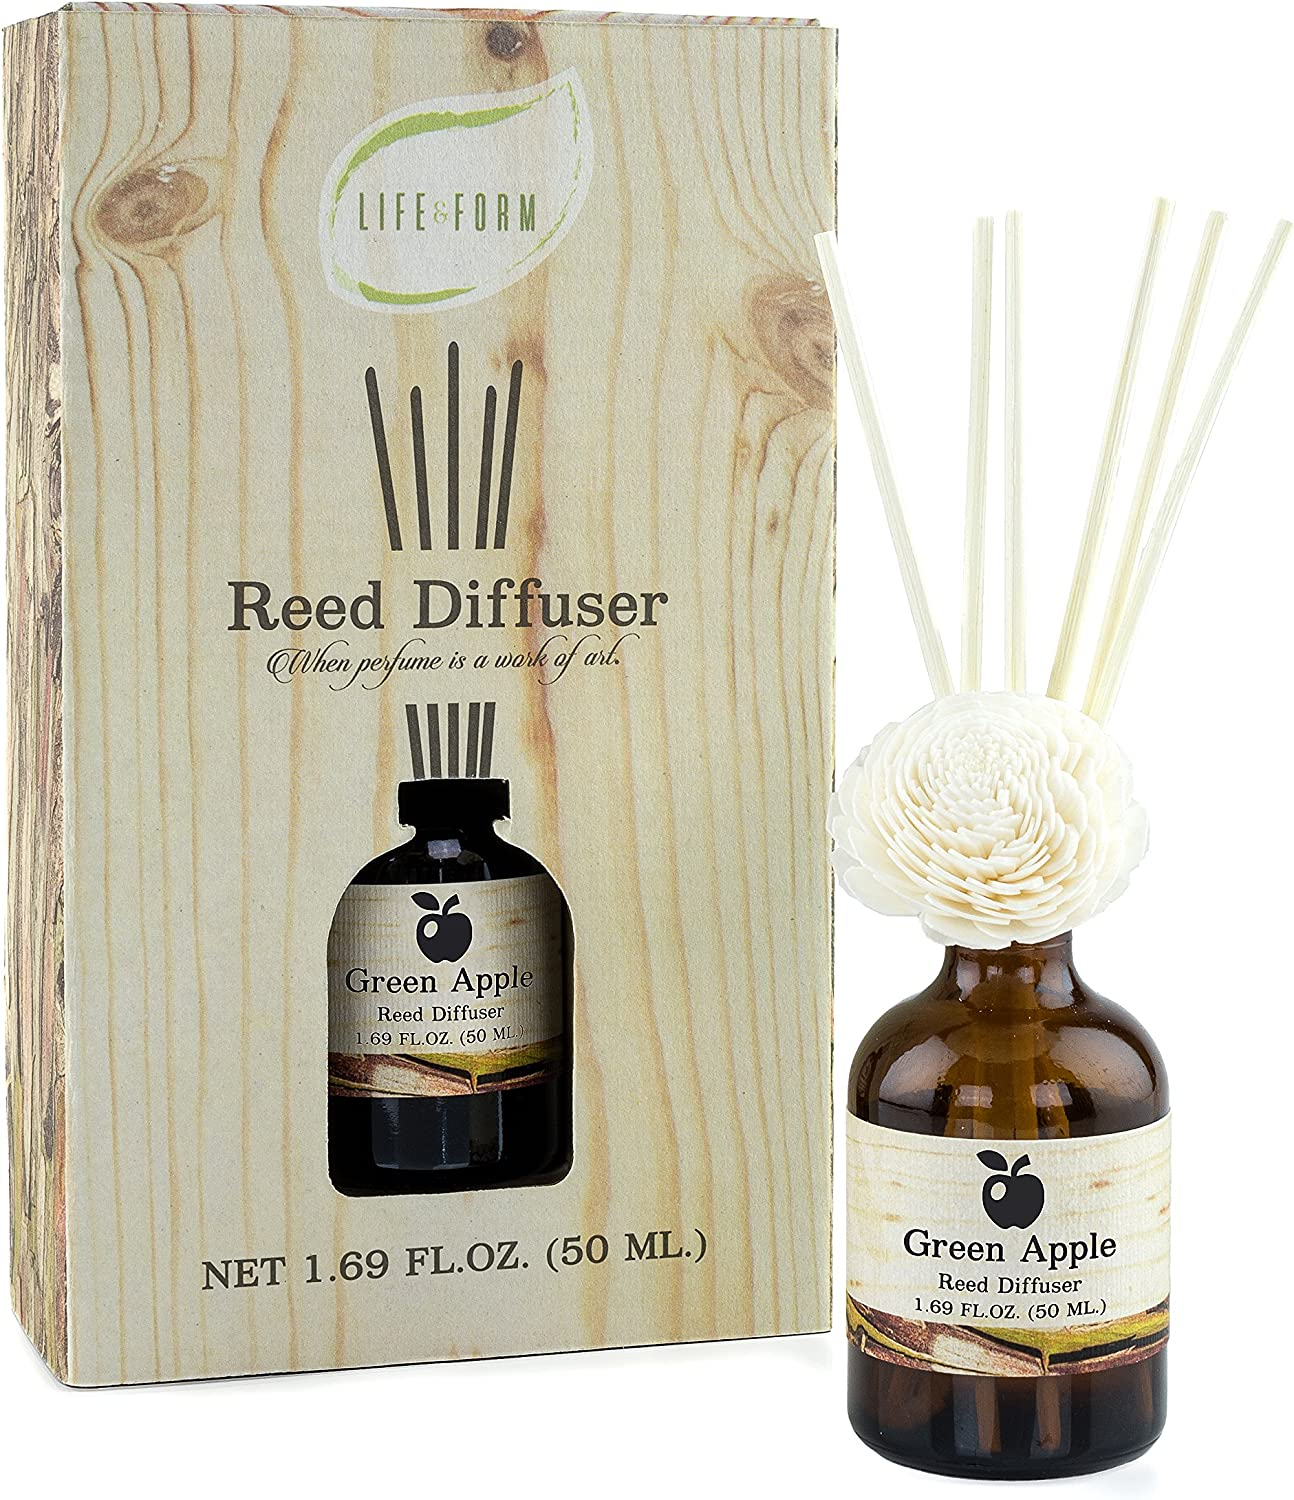 Life & Form Green Apple Reed Diffuser (1.69 fl.oz.) | Home Fragrance